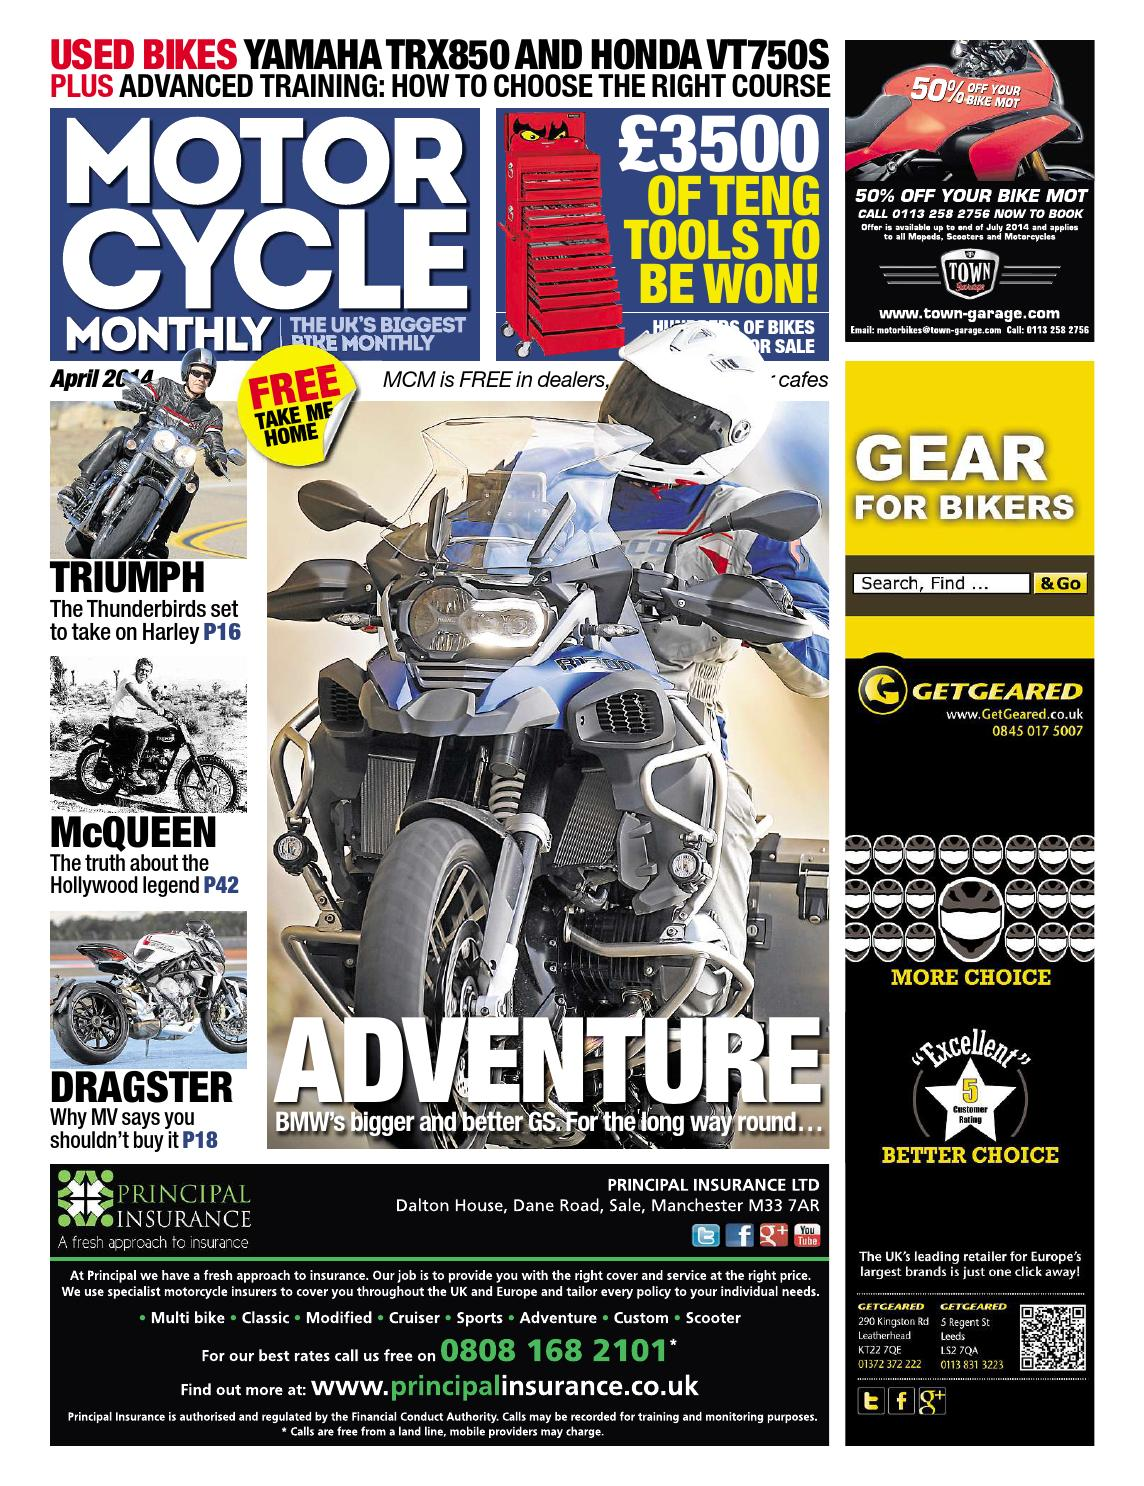 hight resolution of motor cycle monthly april 2014 full edition by mortons media group ltd issuu